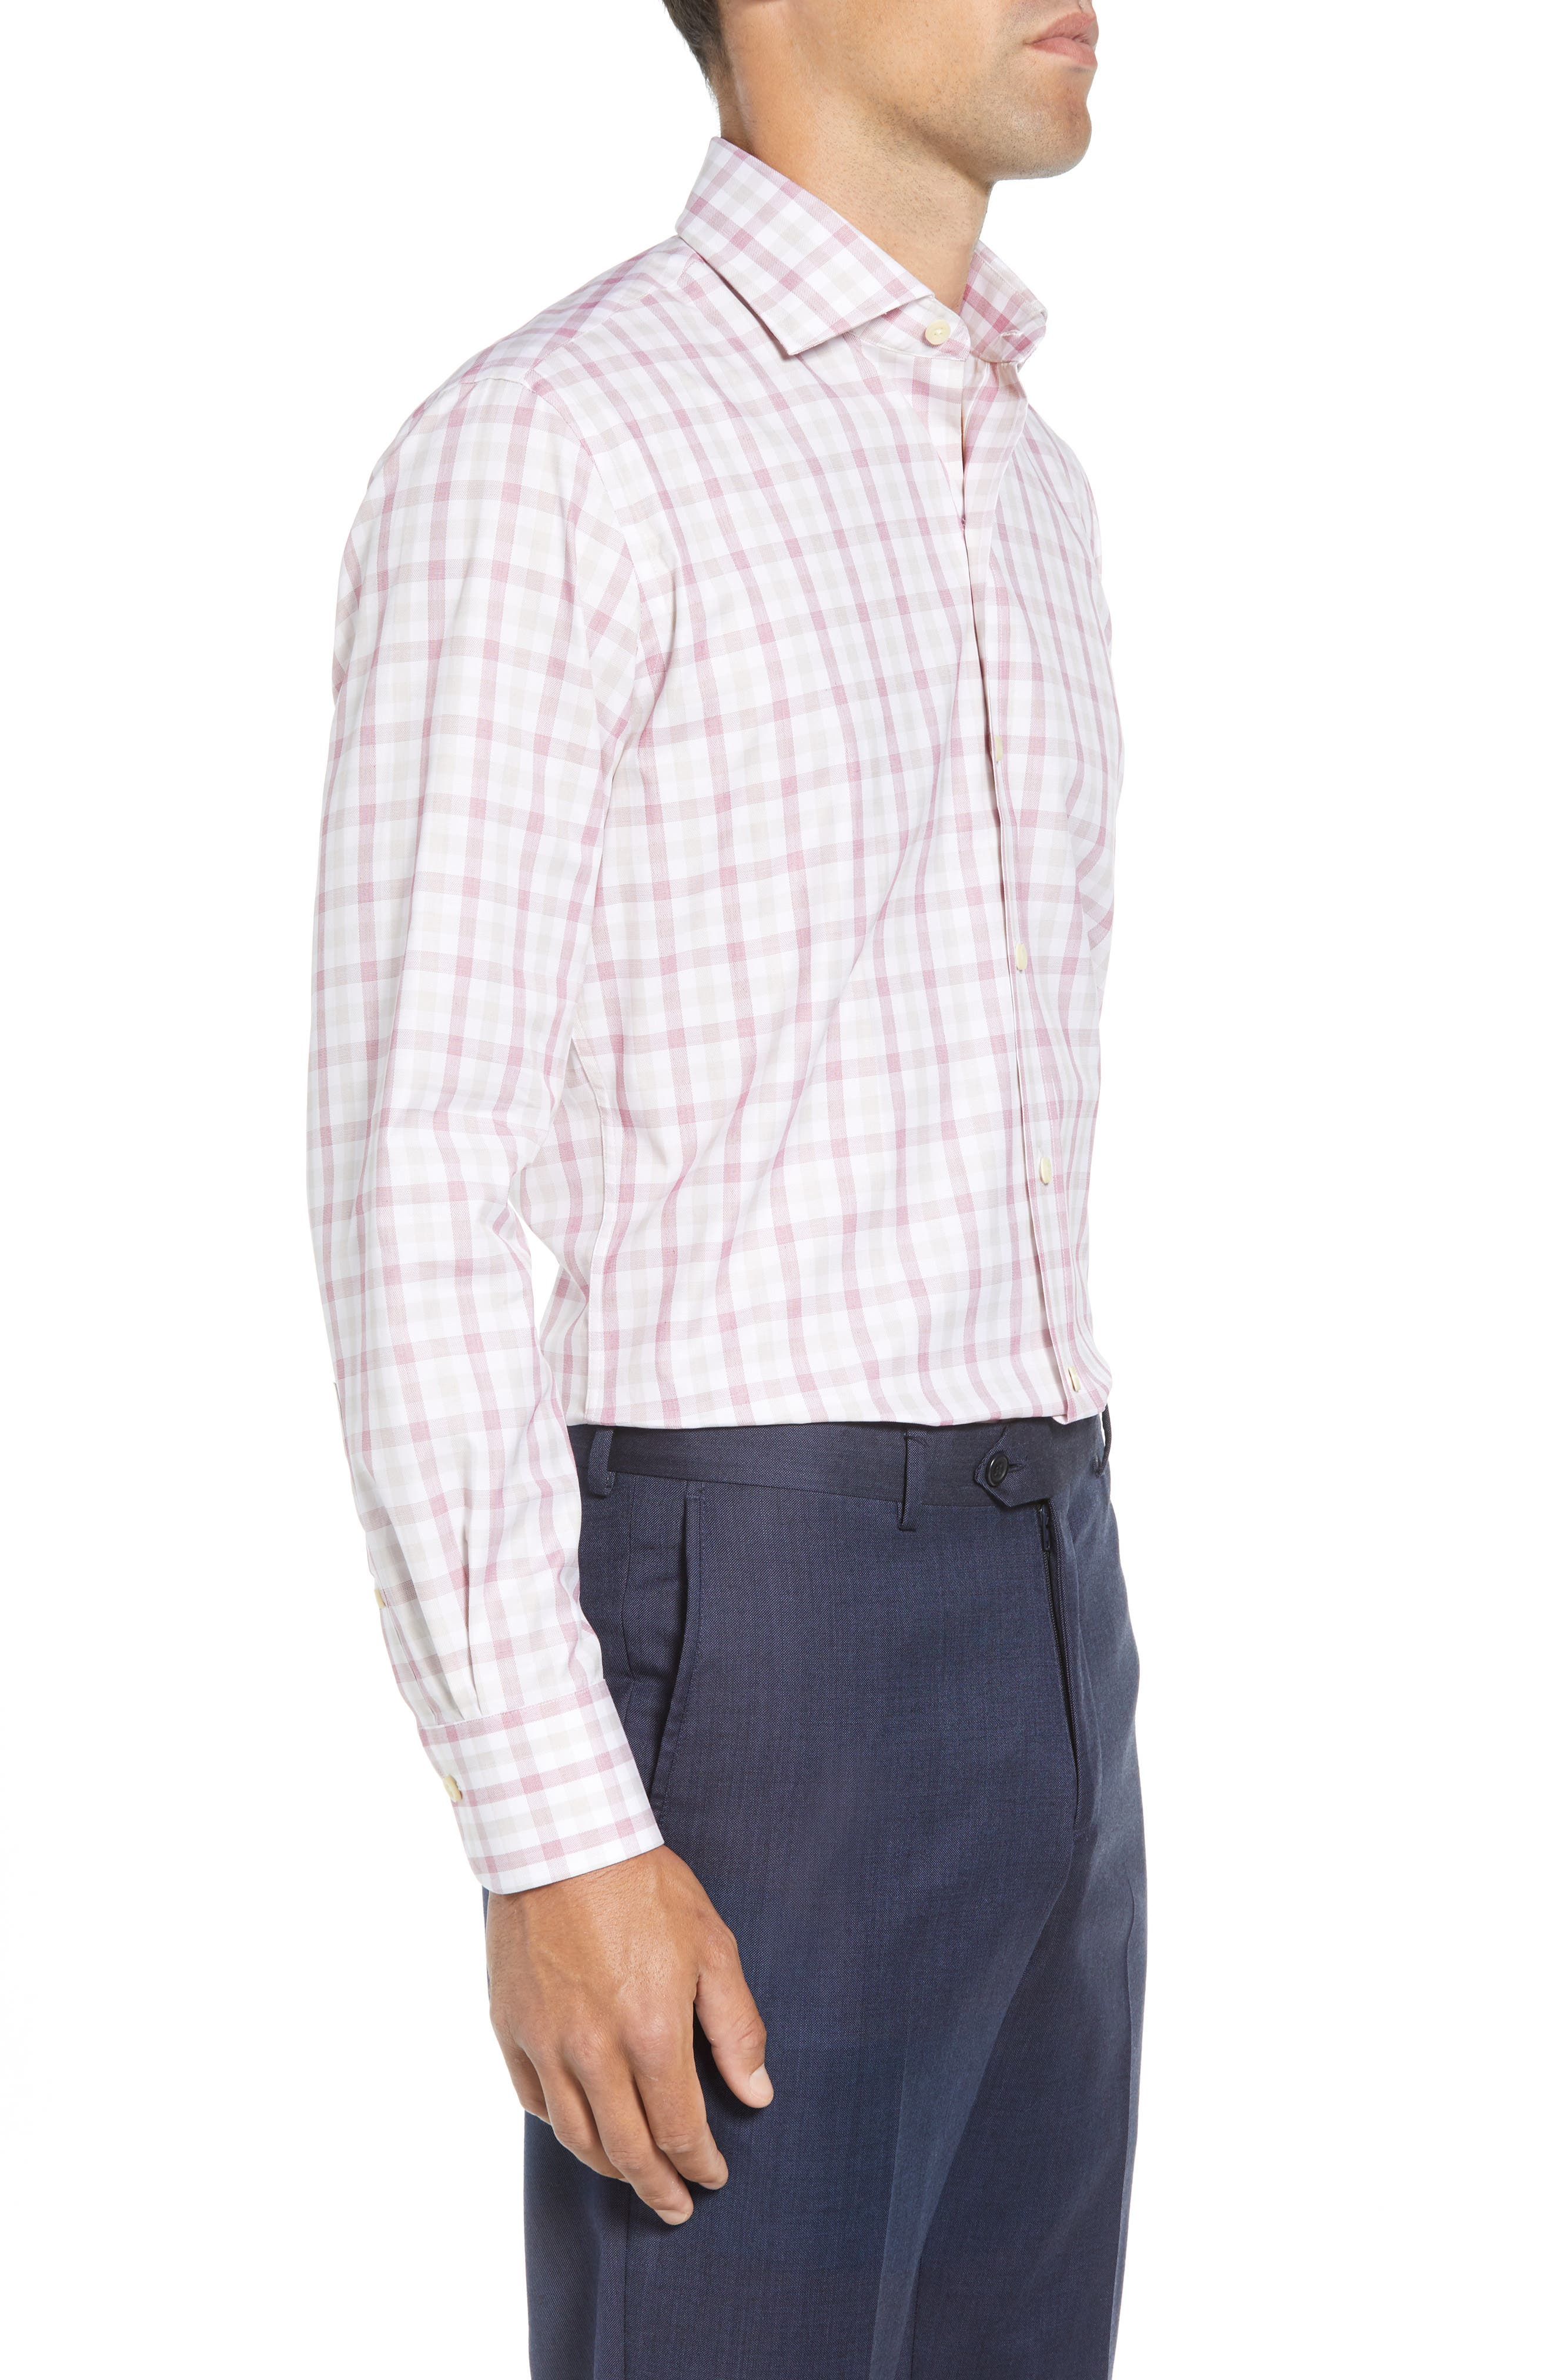 Corbly Trim Fit Check Dress Shirt,                             Alternate thumbnail 4, color,                             RED